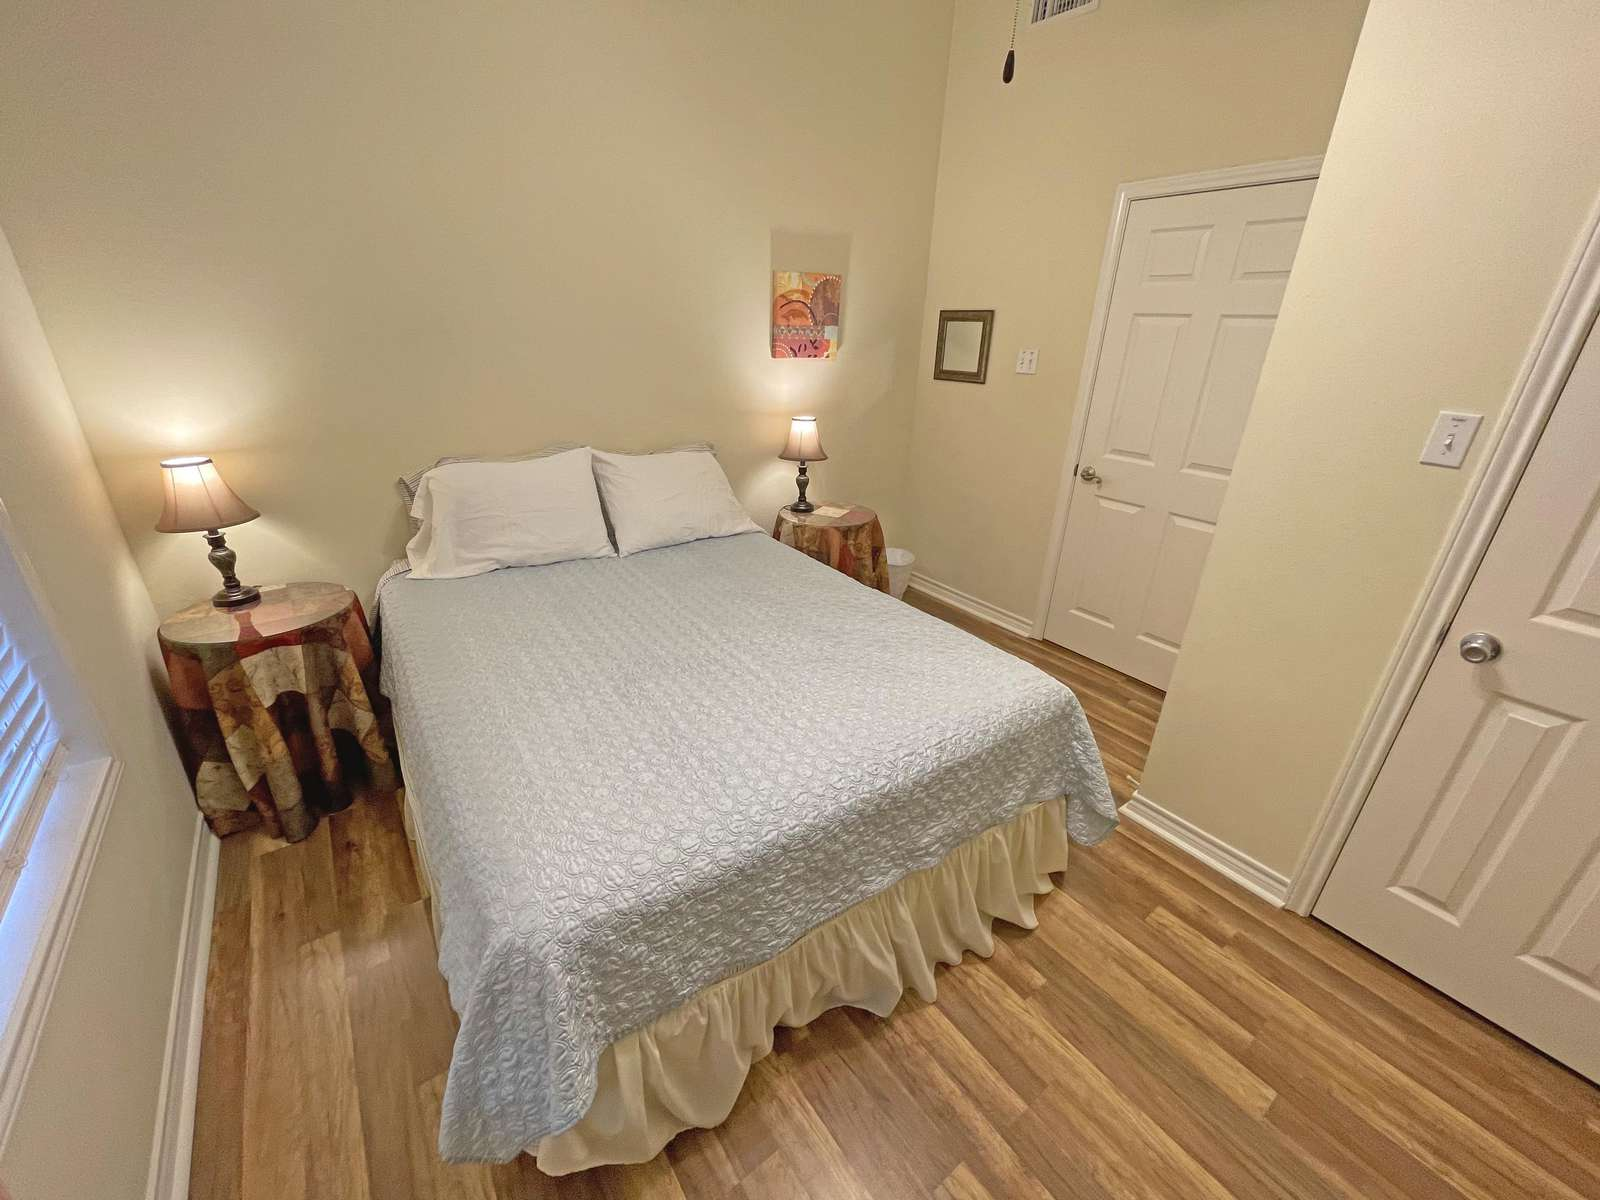 The lower queen bedroom located across from the lower hall bathroom.